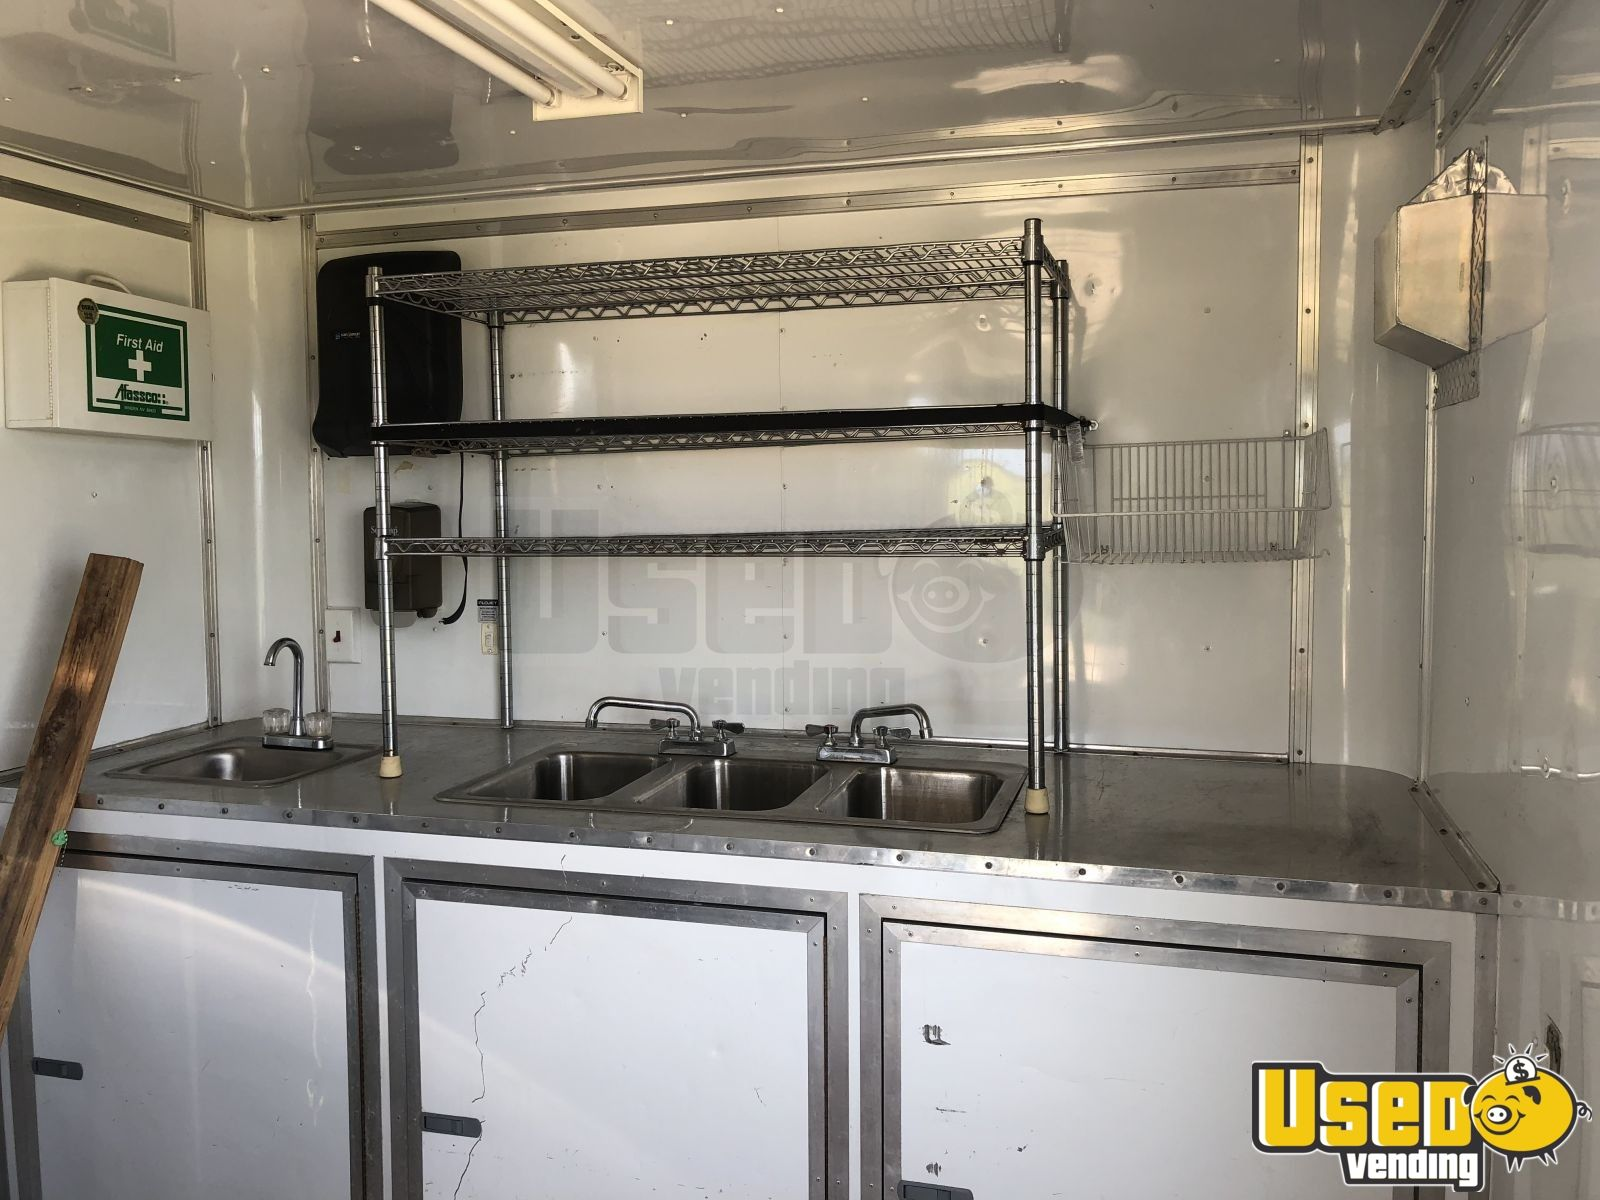 2012 Food Concession Trailer Concession Trailer Concession Window Texas for Sale - 2